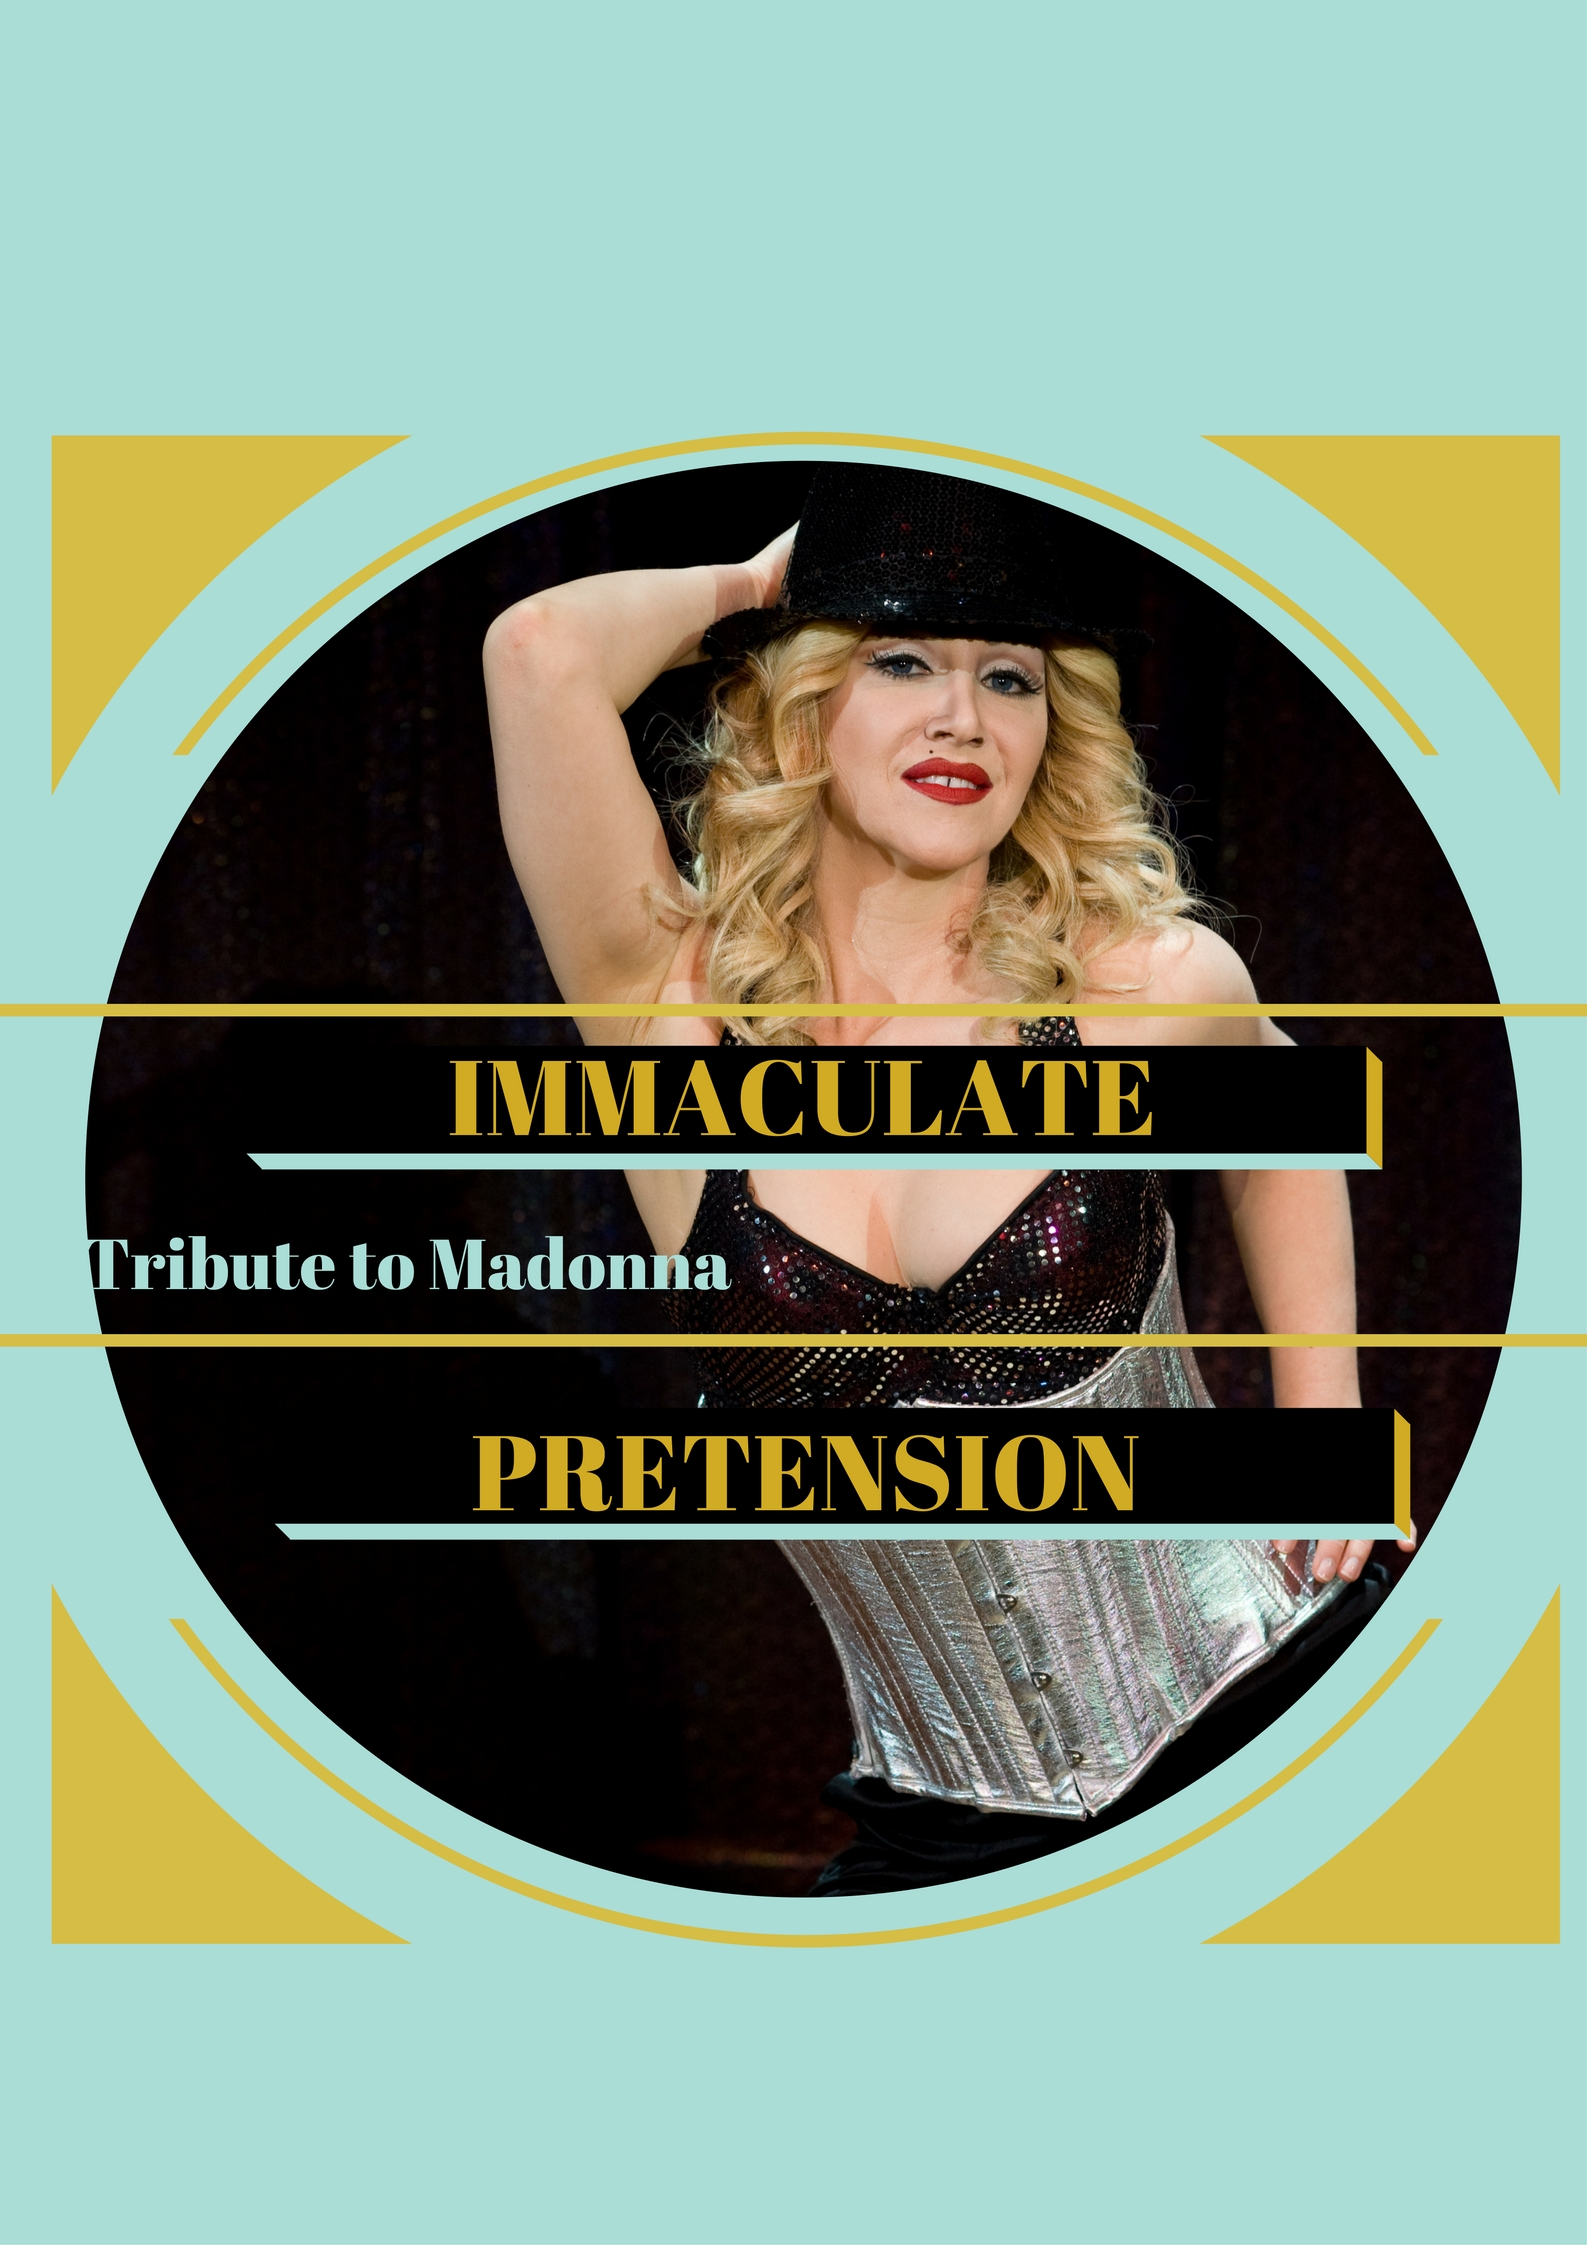 See the Immaculate Pretension, Coty Alexander's tribute to Madonna at SummerfestBrea festival in Brea, CA. June 3rd, 2017